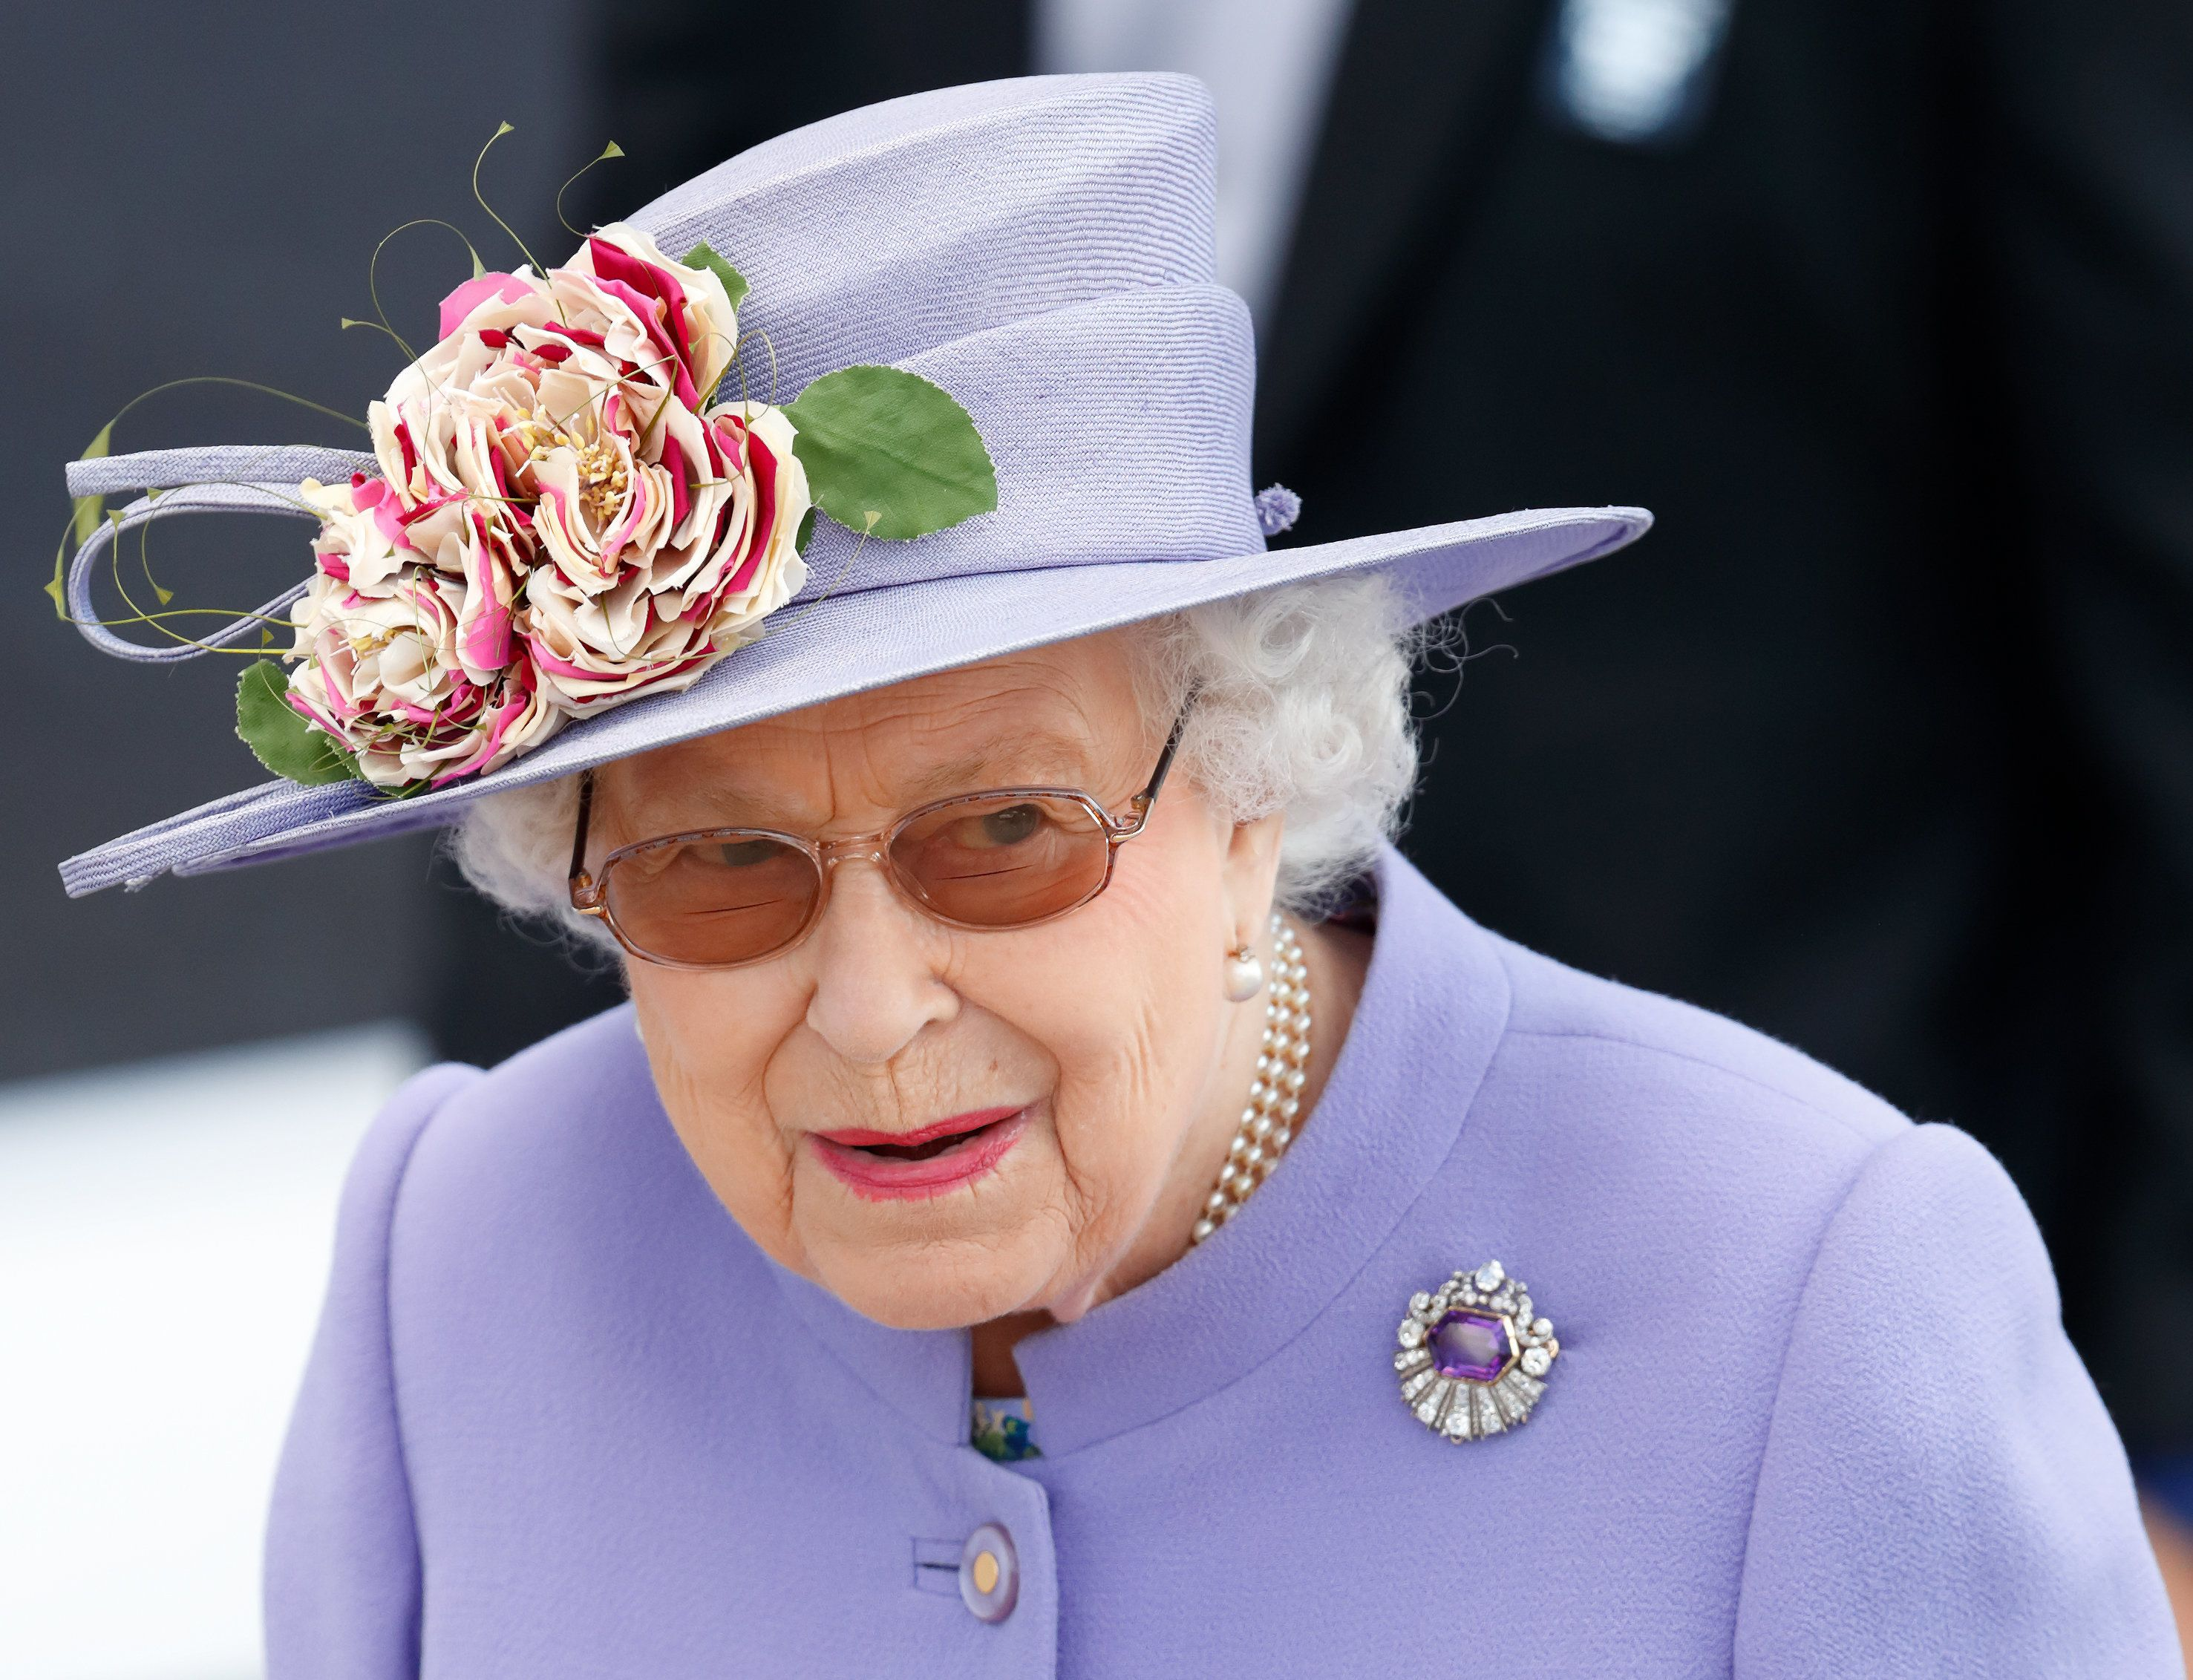 Queen Elizabeth II recovering from cataract surgery